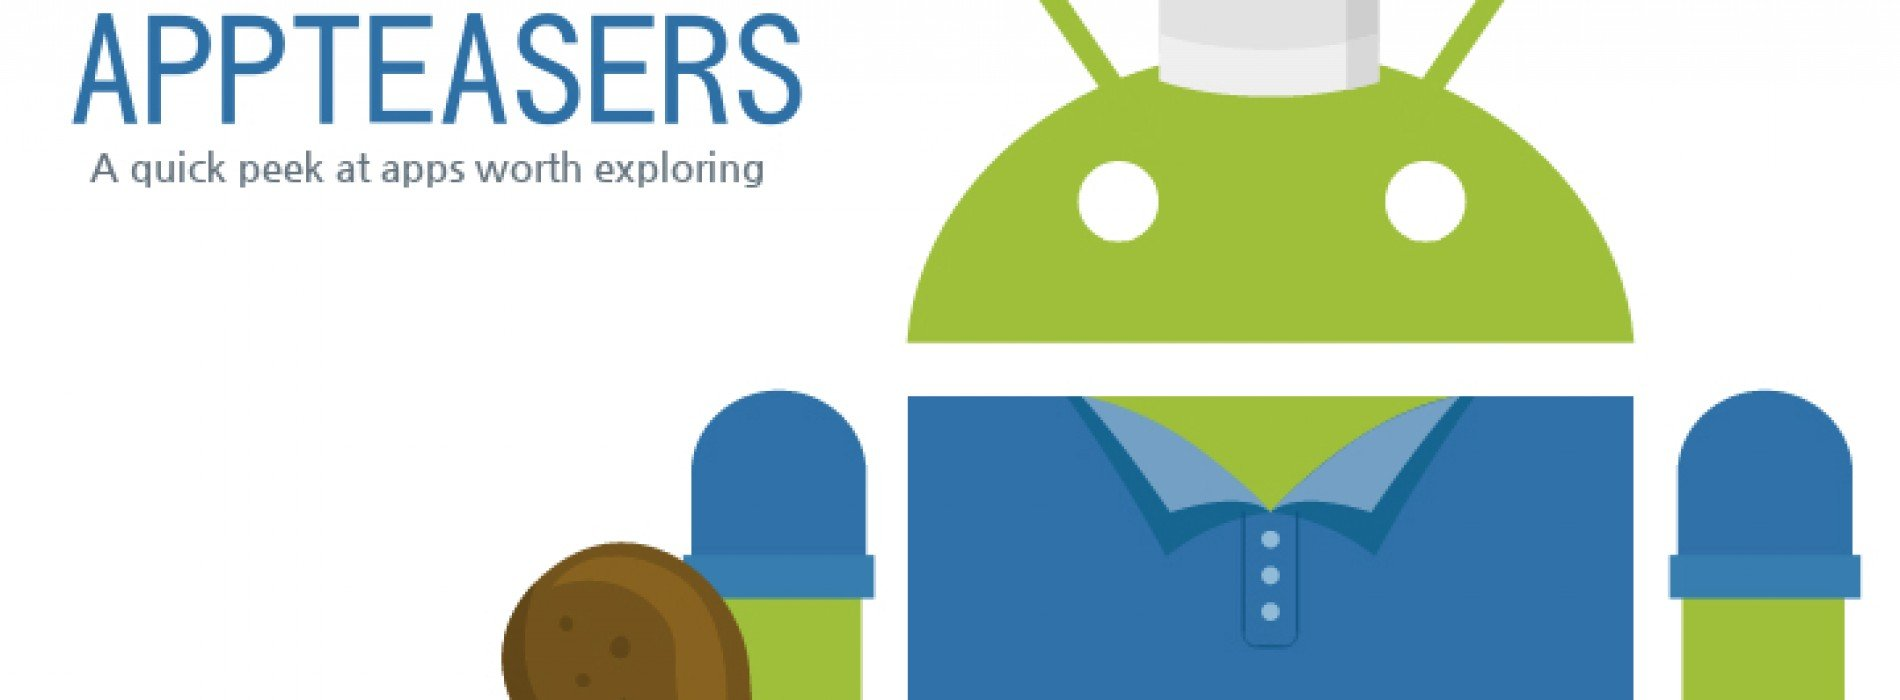 APPTEASERS: 15 great Android apps and games you should know about (August 29)